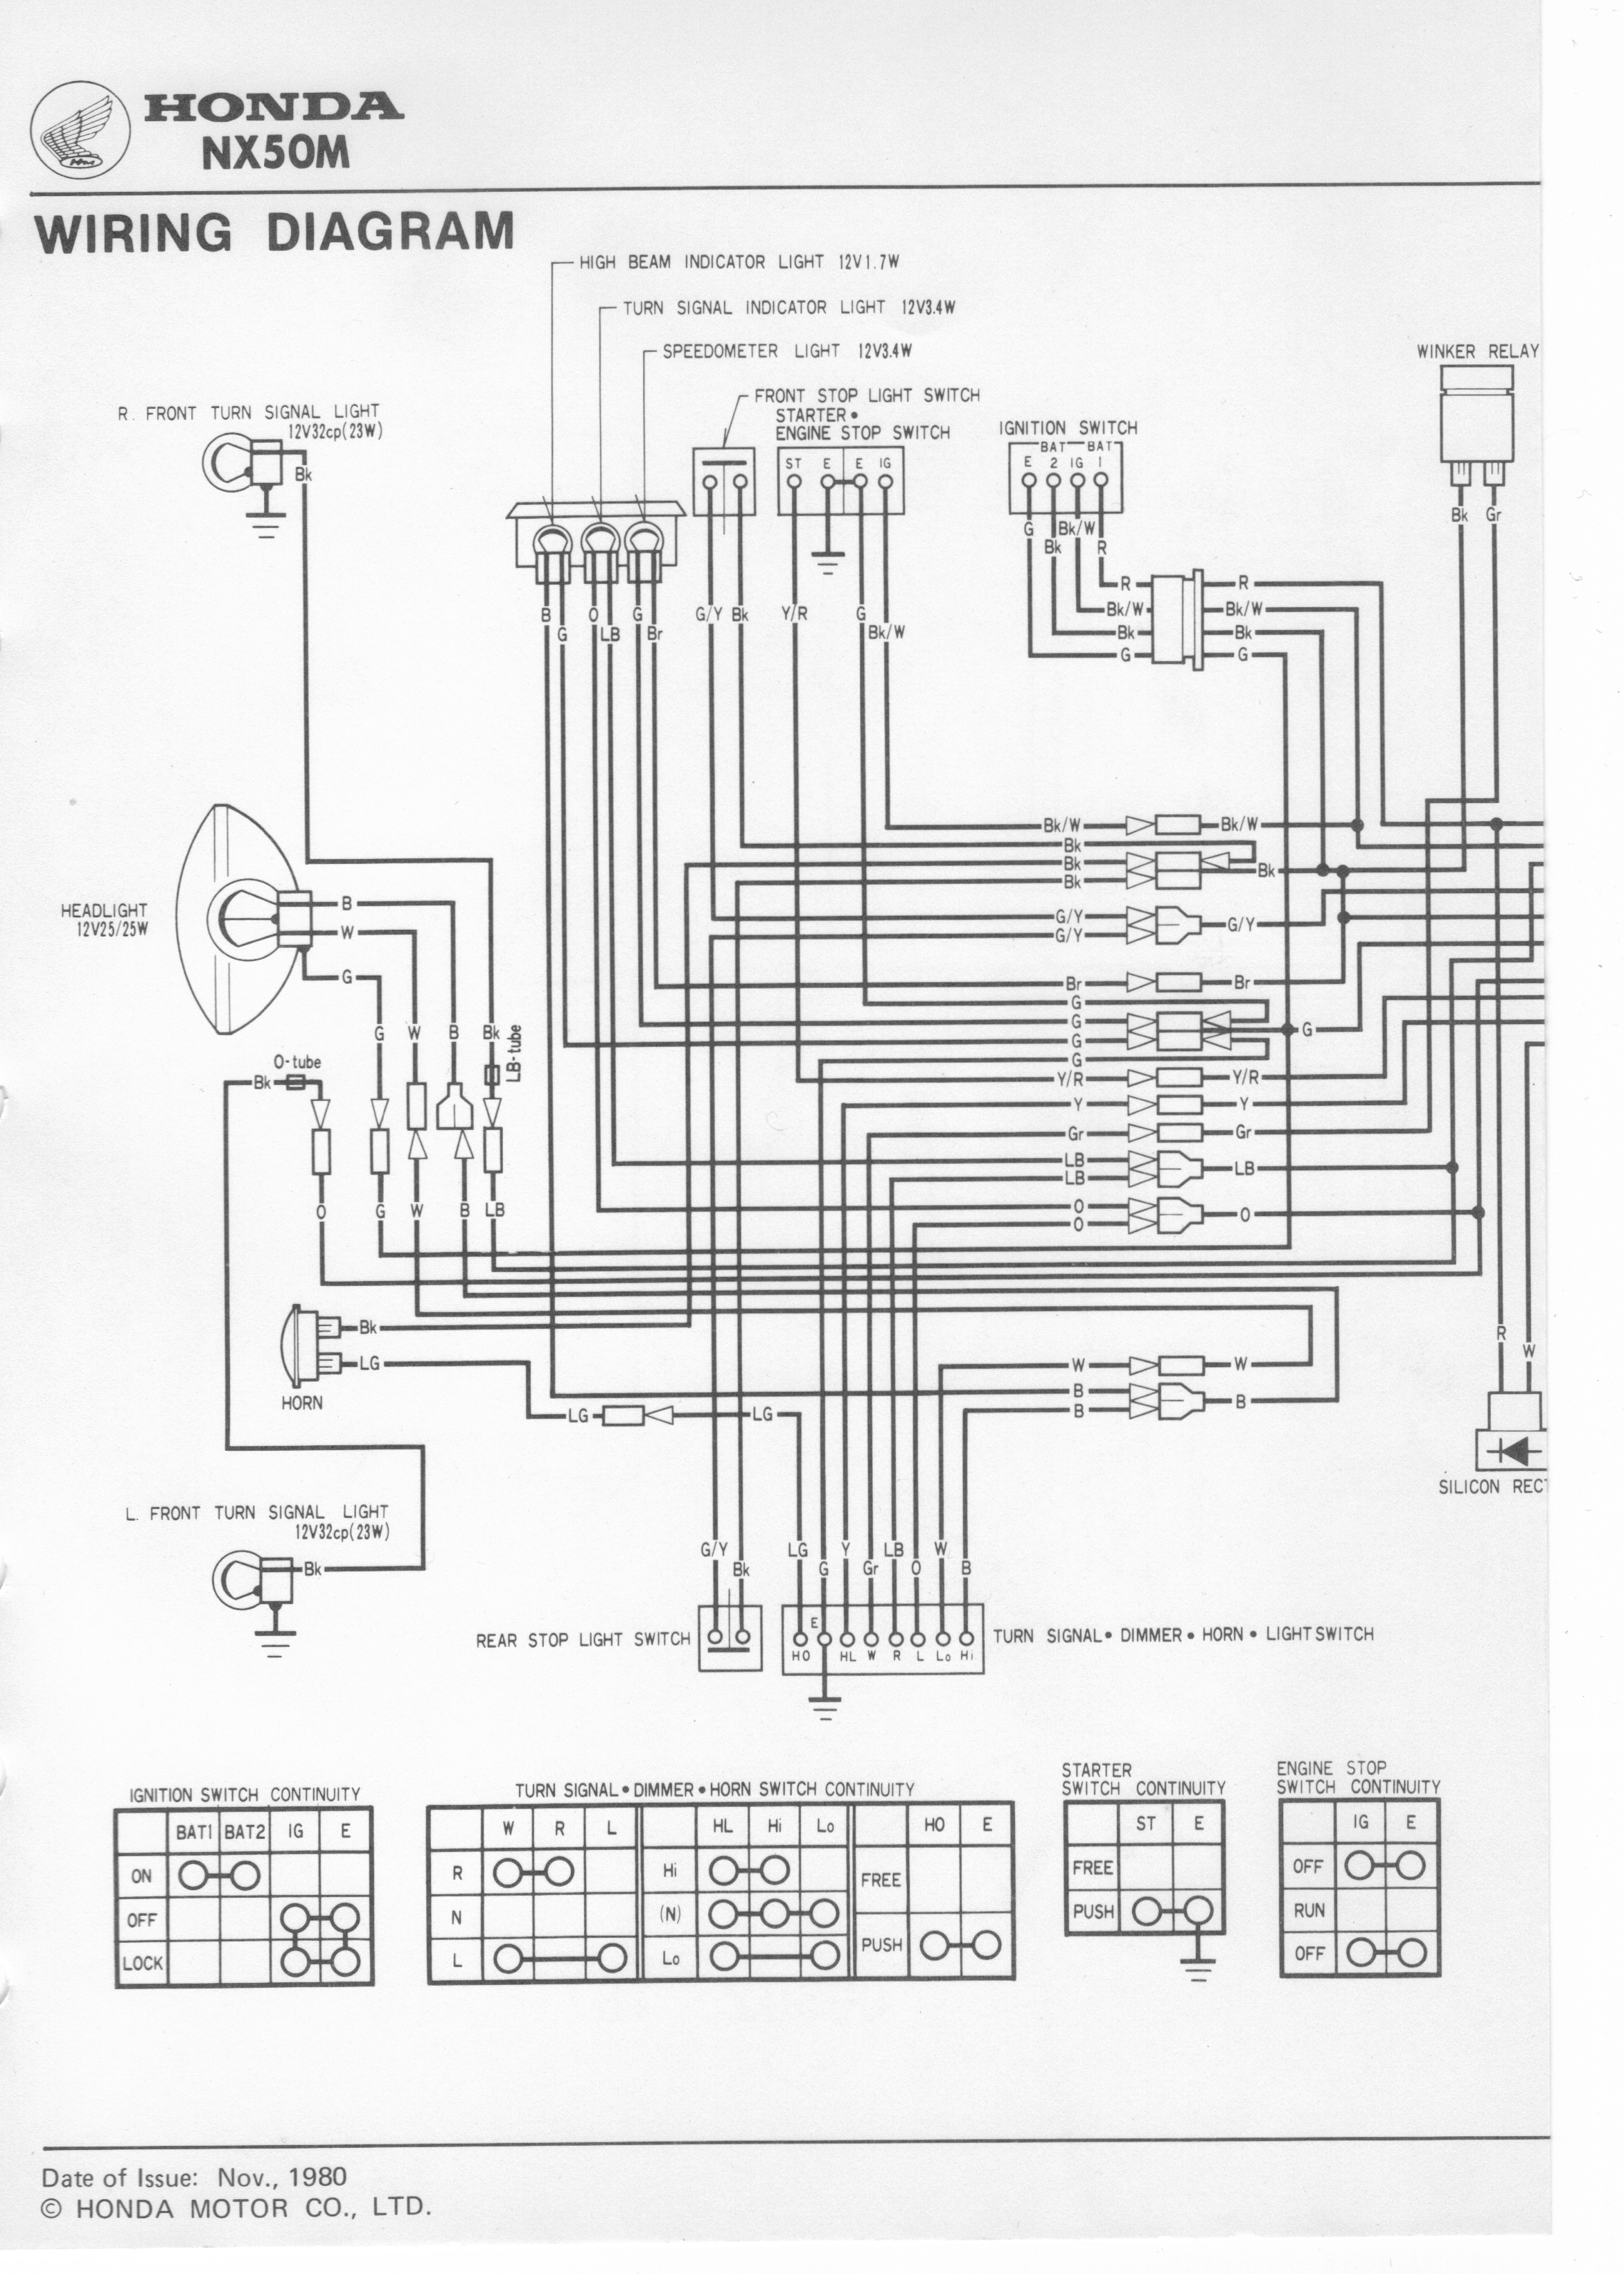 1983 Honda Ft500 Wiring Diagram Residential Electrical Symbols Ft 500 Nu50m 1982 Gl650i Elsalvadorla Cb650